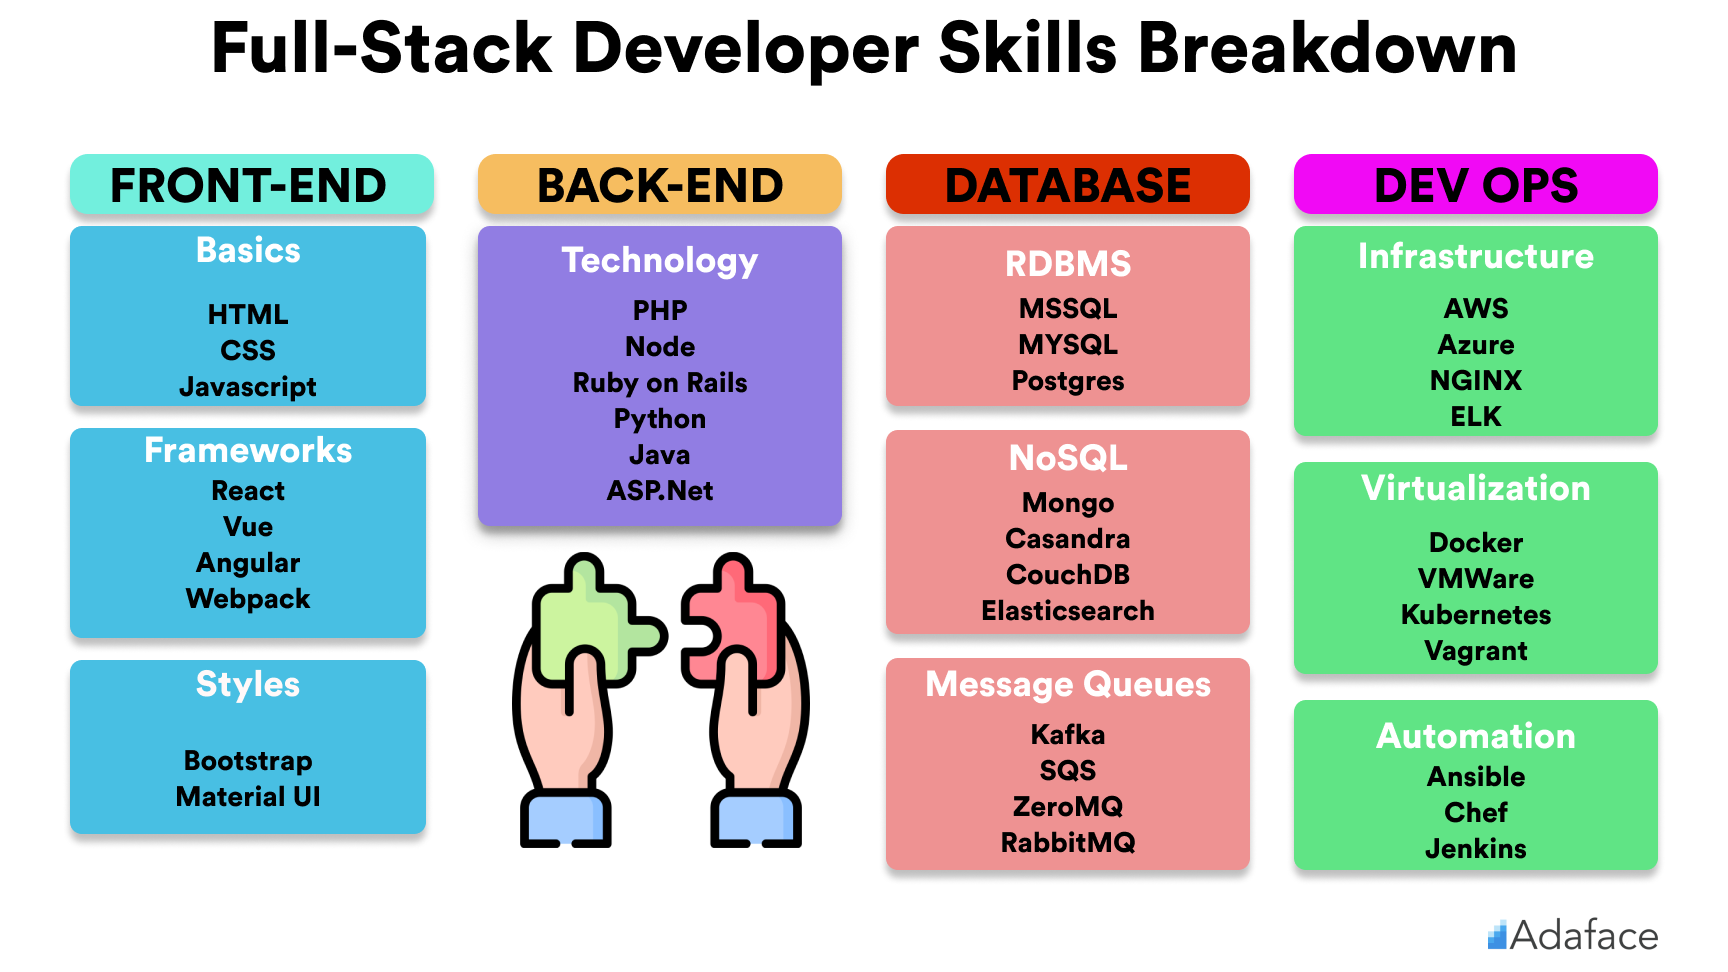 Full-stack developer skills breakdown - Adaface salary guides